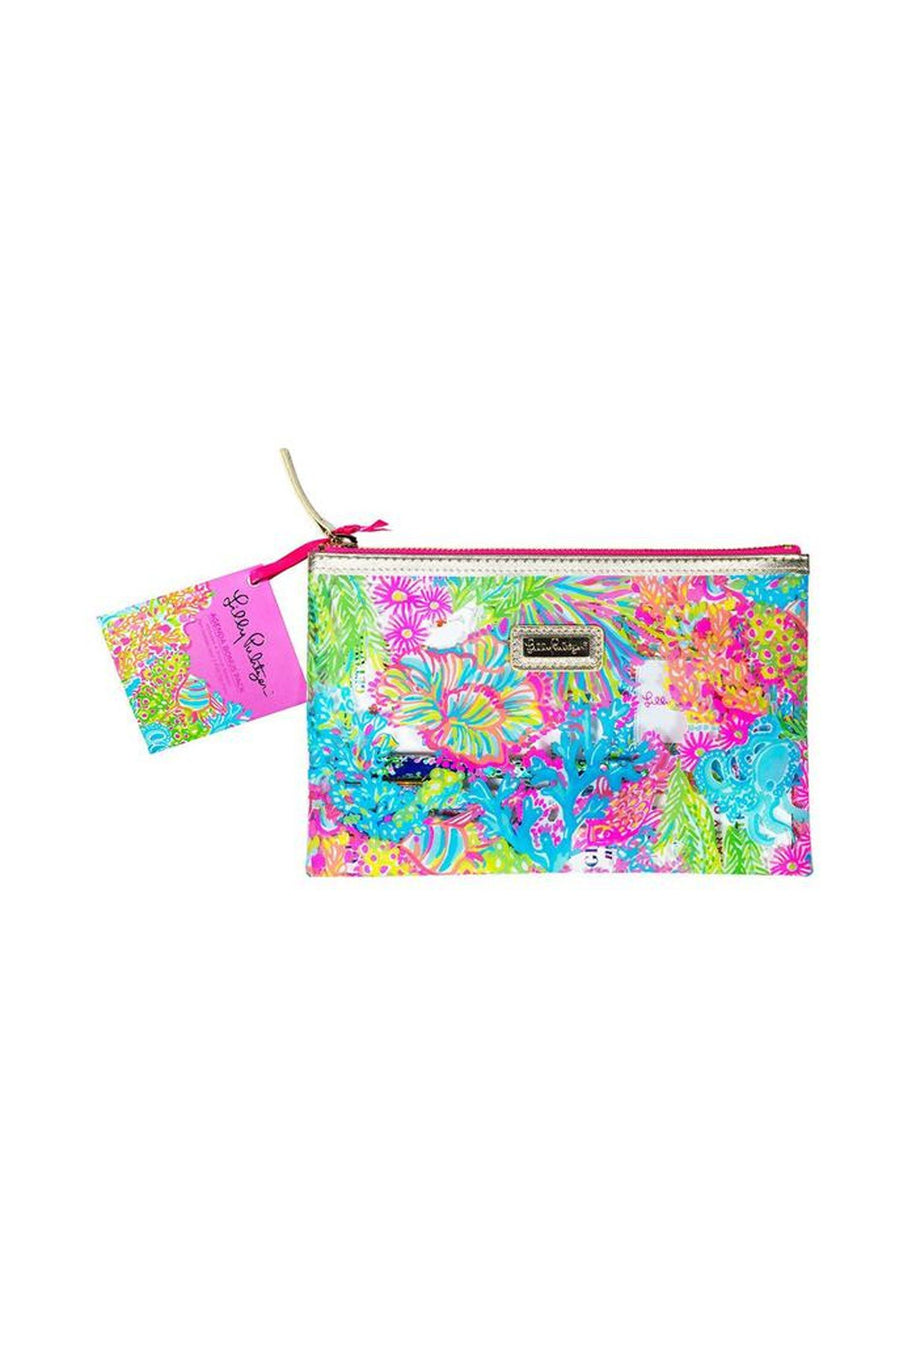 Lilly Pulitzer Agenda Bonus Pack, accessories, Lilly Pulitzer, - Sunny and Southern,